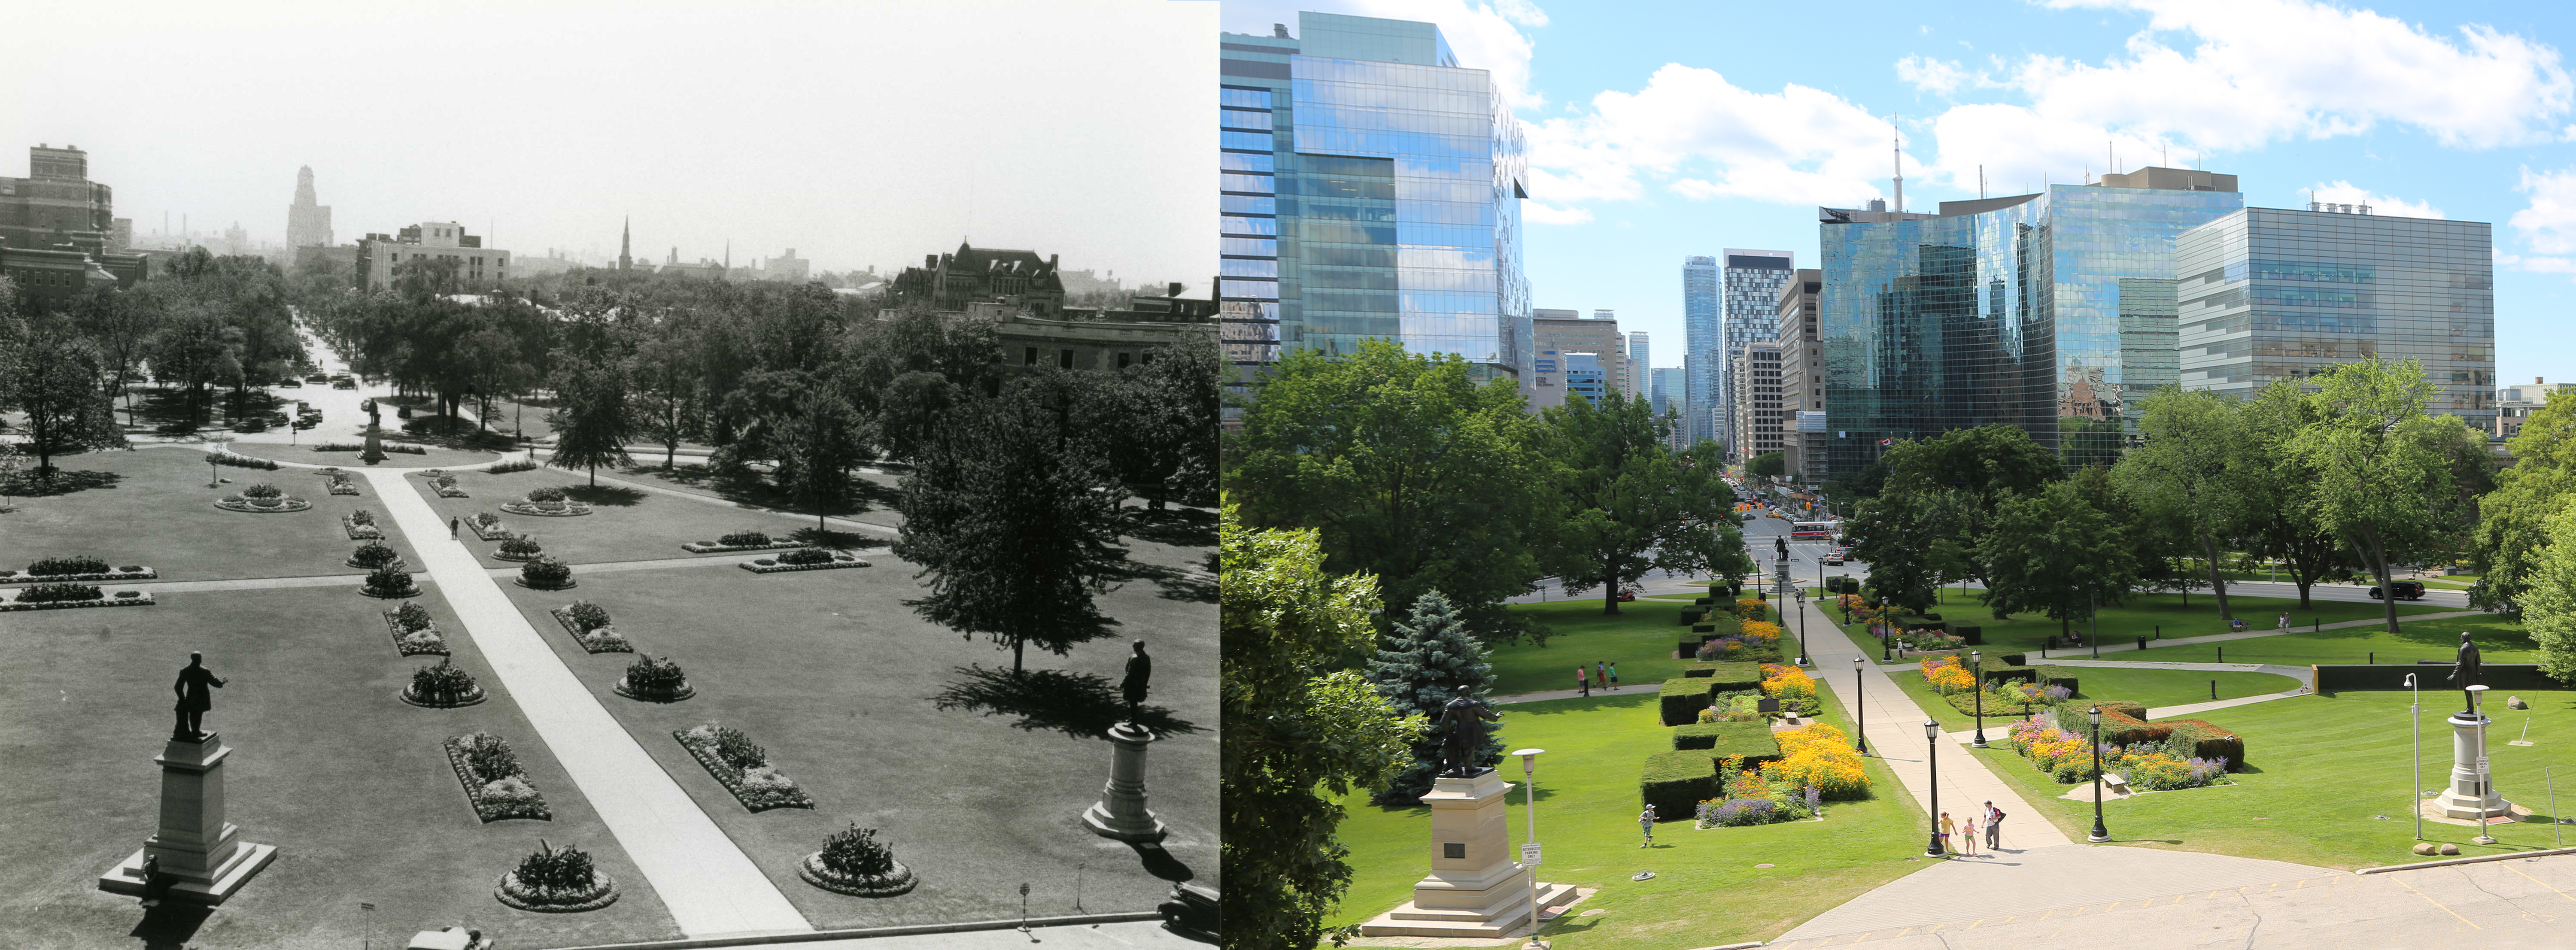 Aerial view looking south from the Legislative Building to University Avenue - the view on the left is from the 1930s, the view on the right is from present day